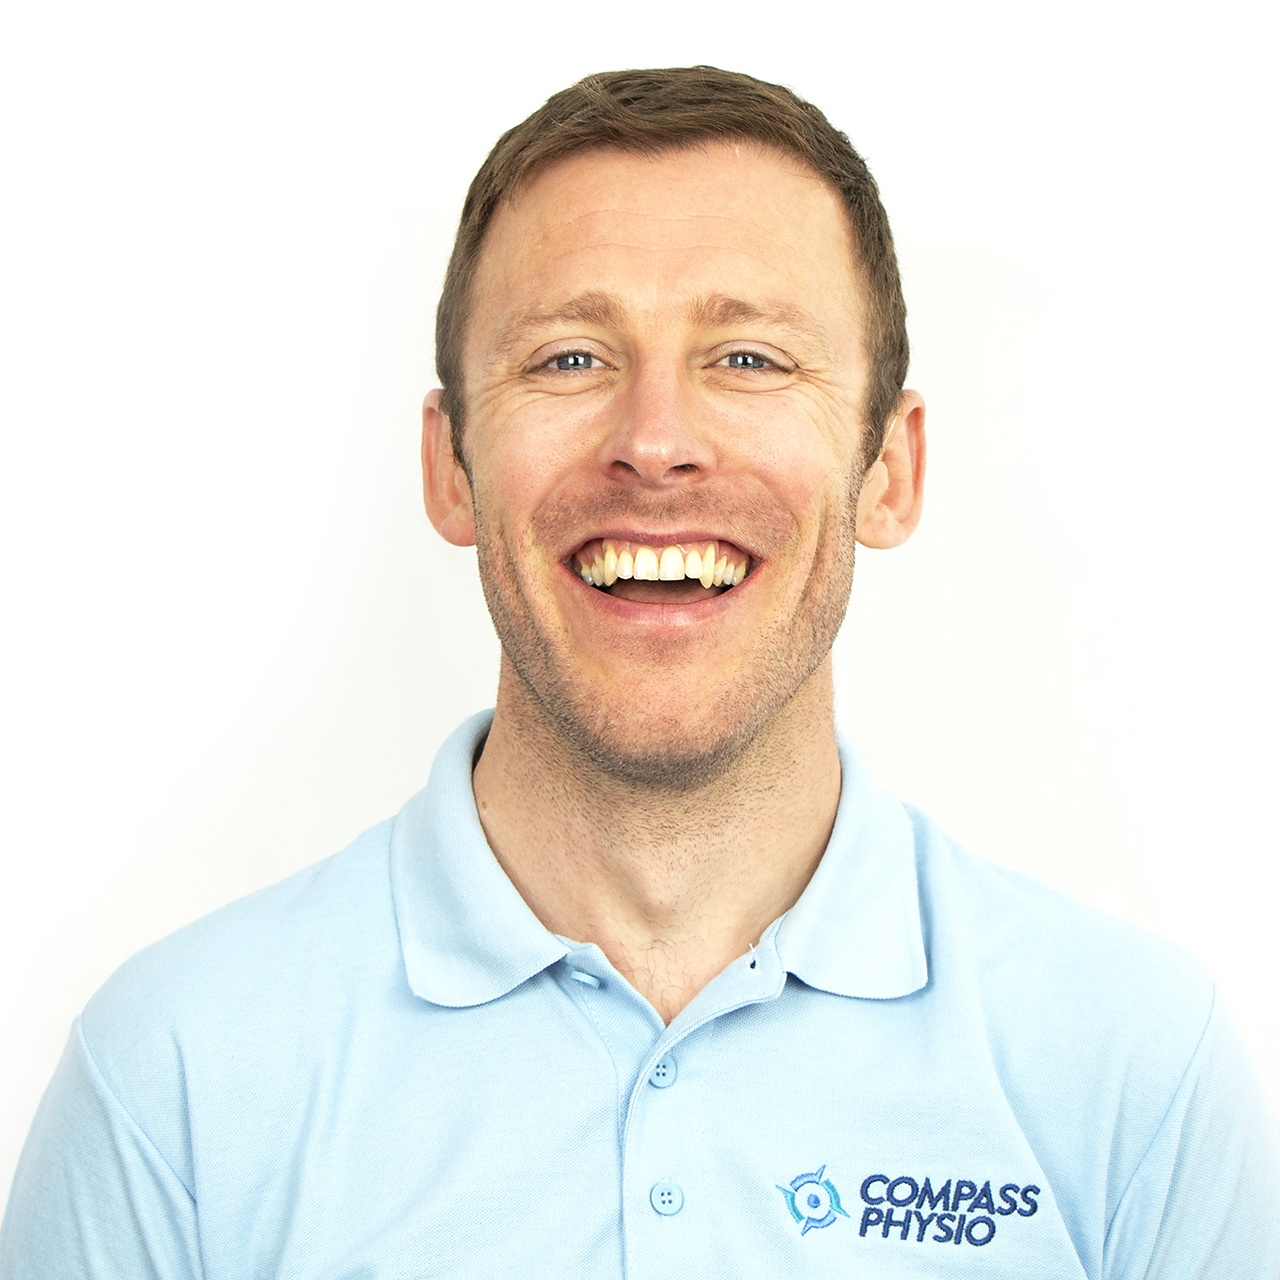 Colin Physiotherapist